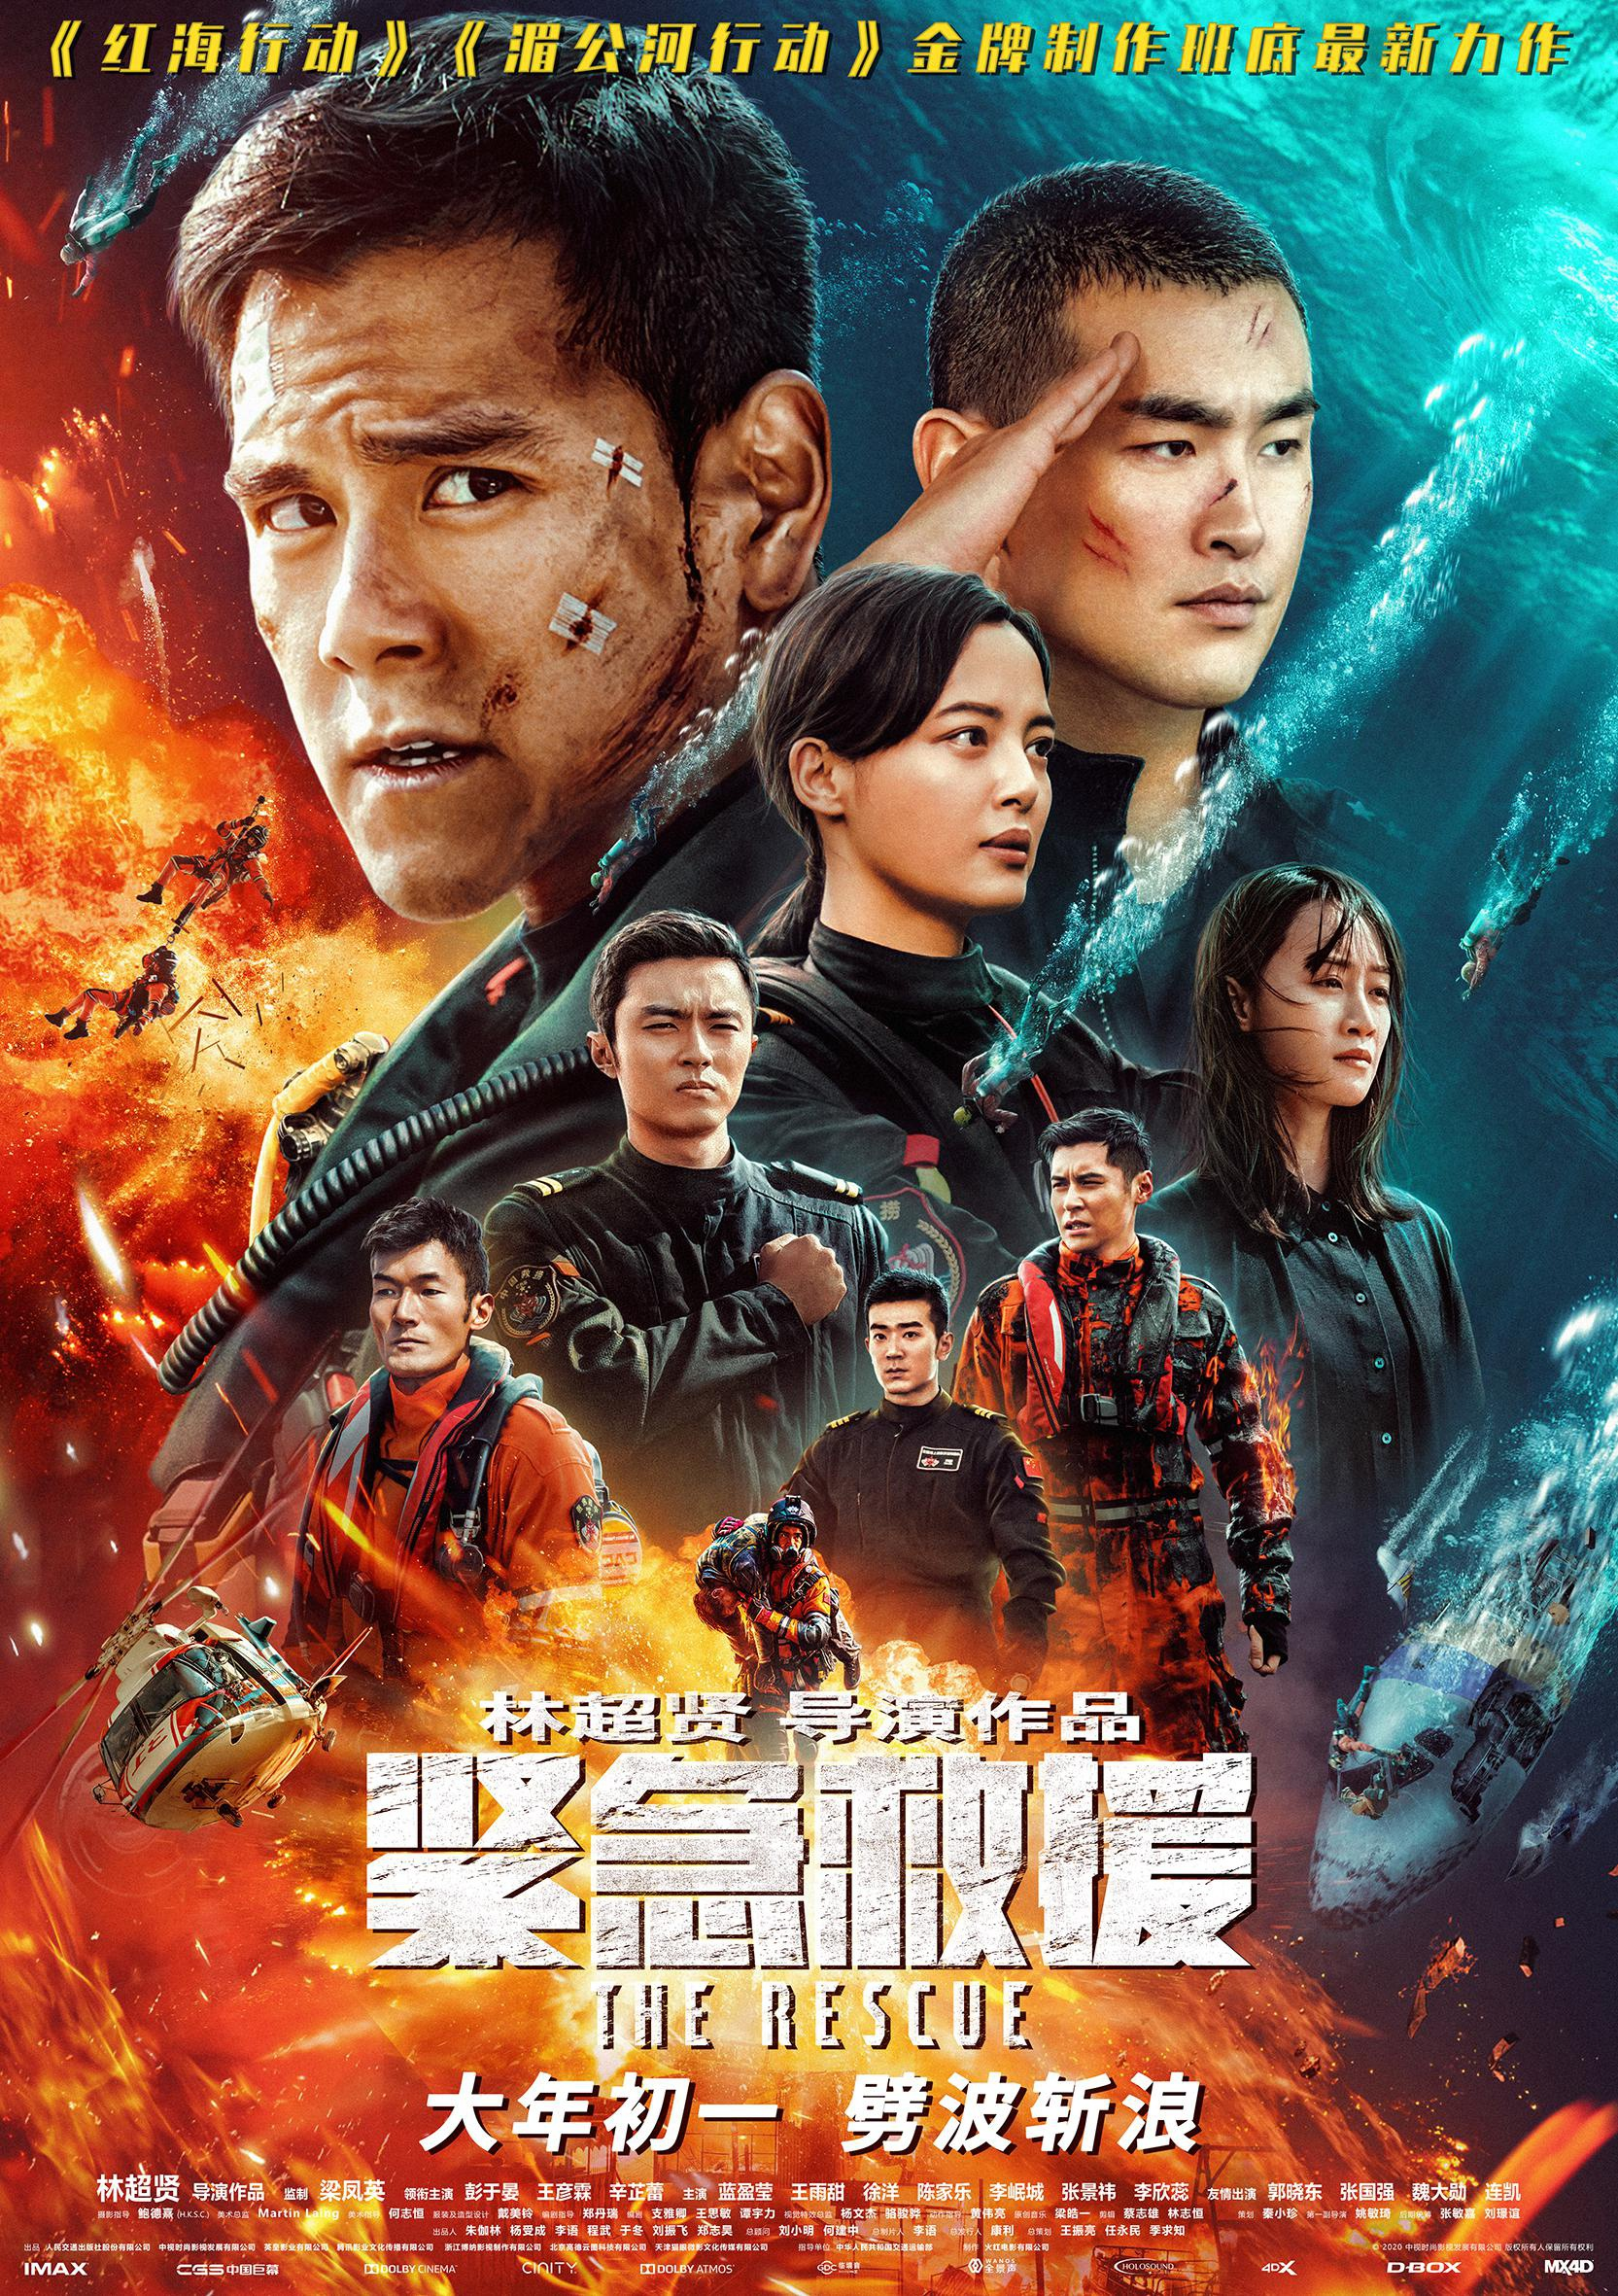 The Rescue (Mand) 紧急救援